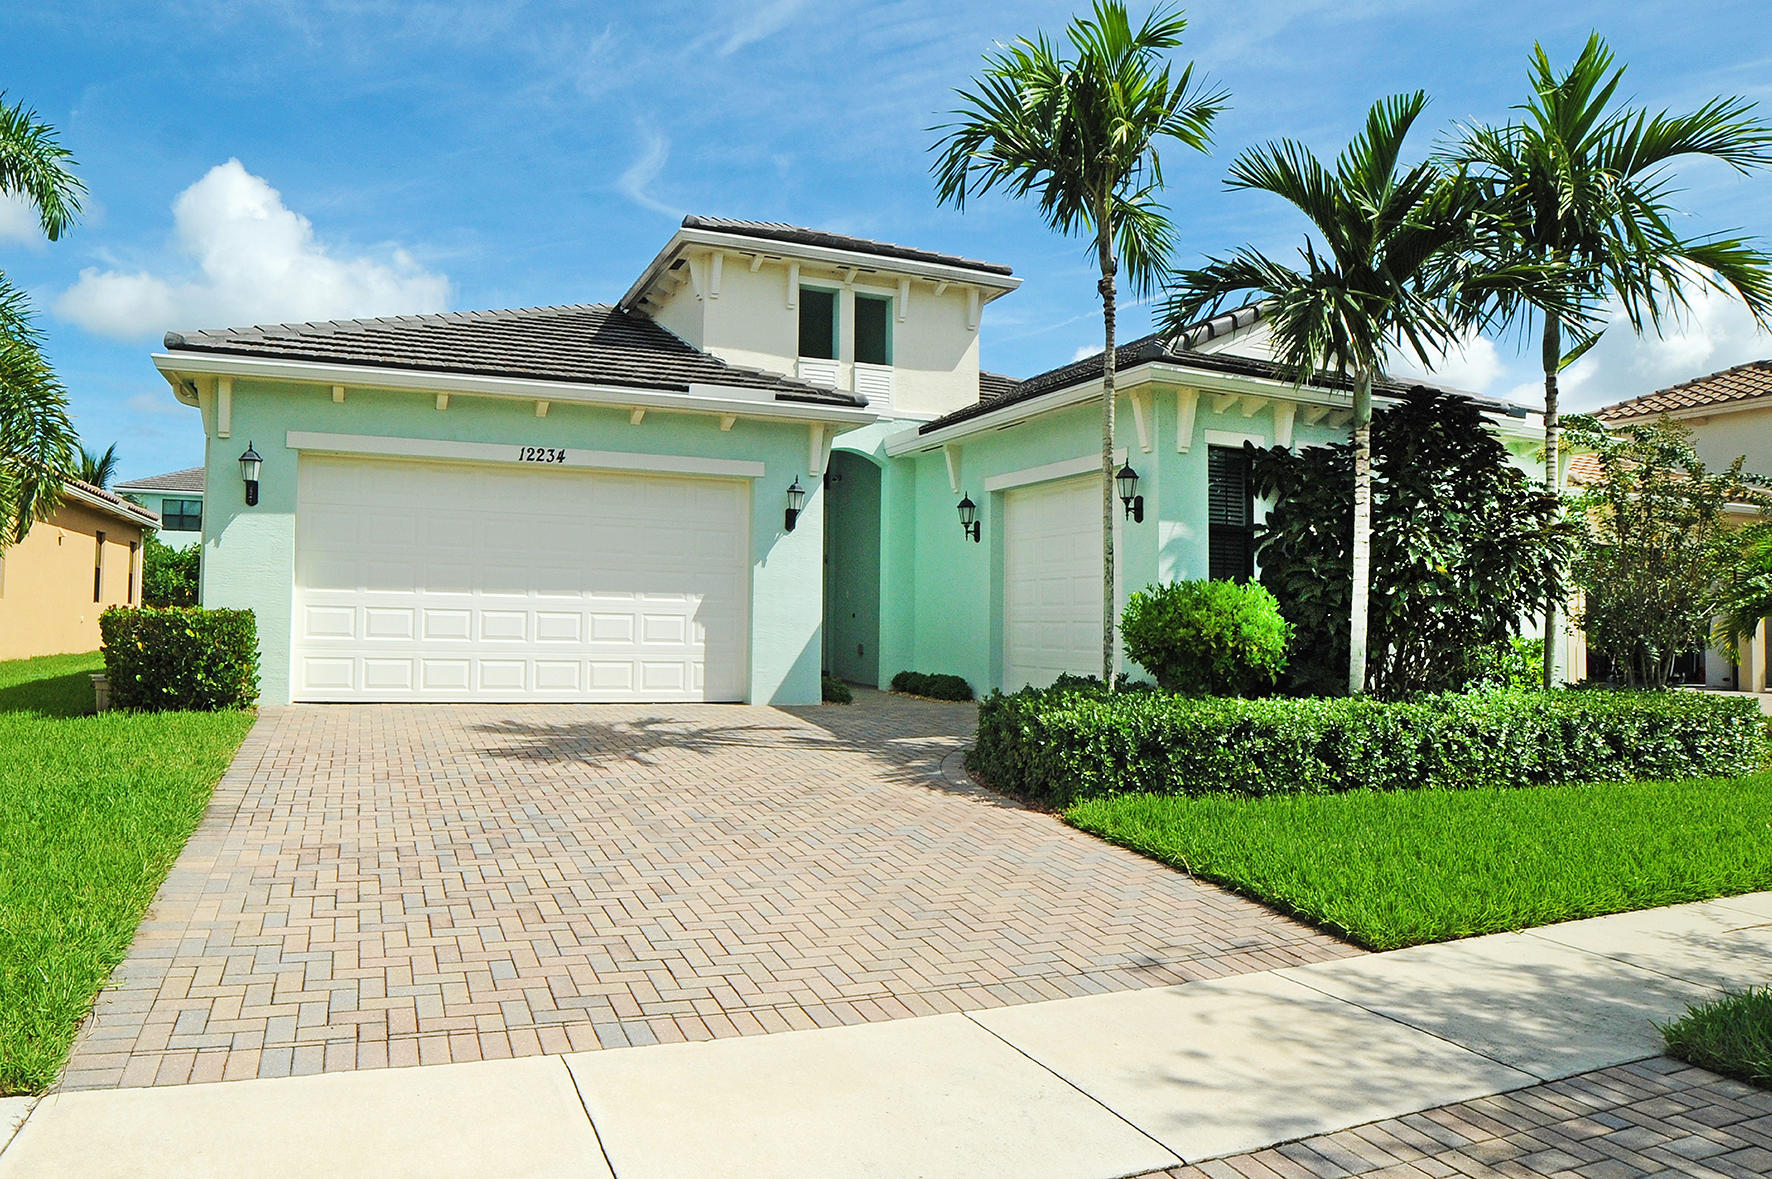 12234 Boca Reserve Lane, Boca Raton, Florida 33428, 4 Bedrooms Bedrooms, ,3 BathroomsBathrooms,A,Single family,Boca Reserve,RX-10359810